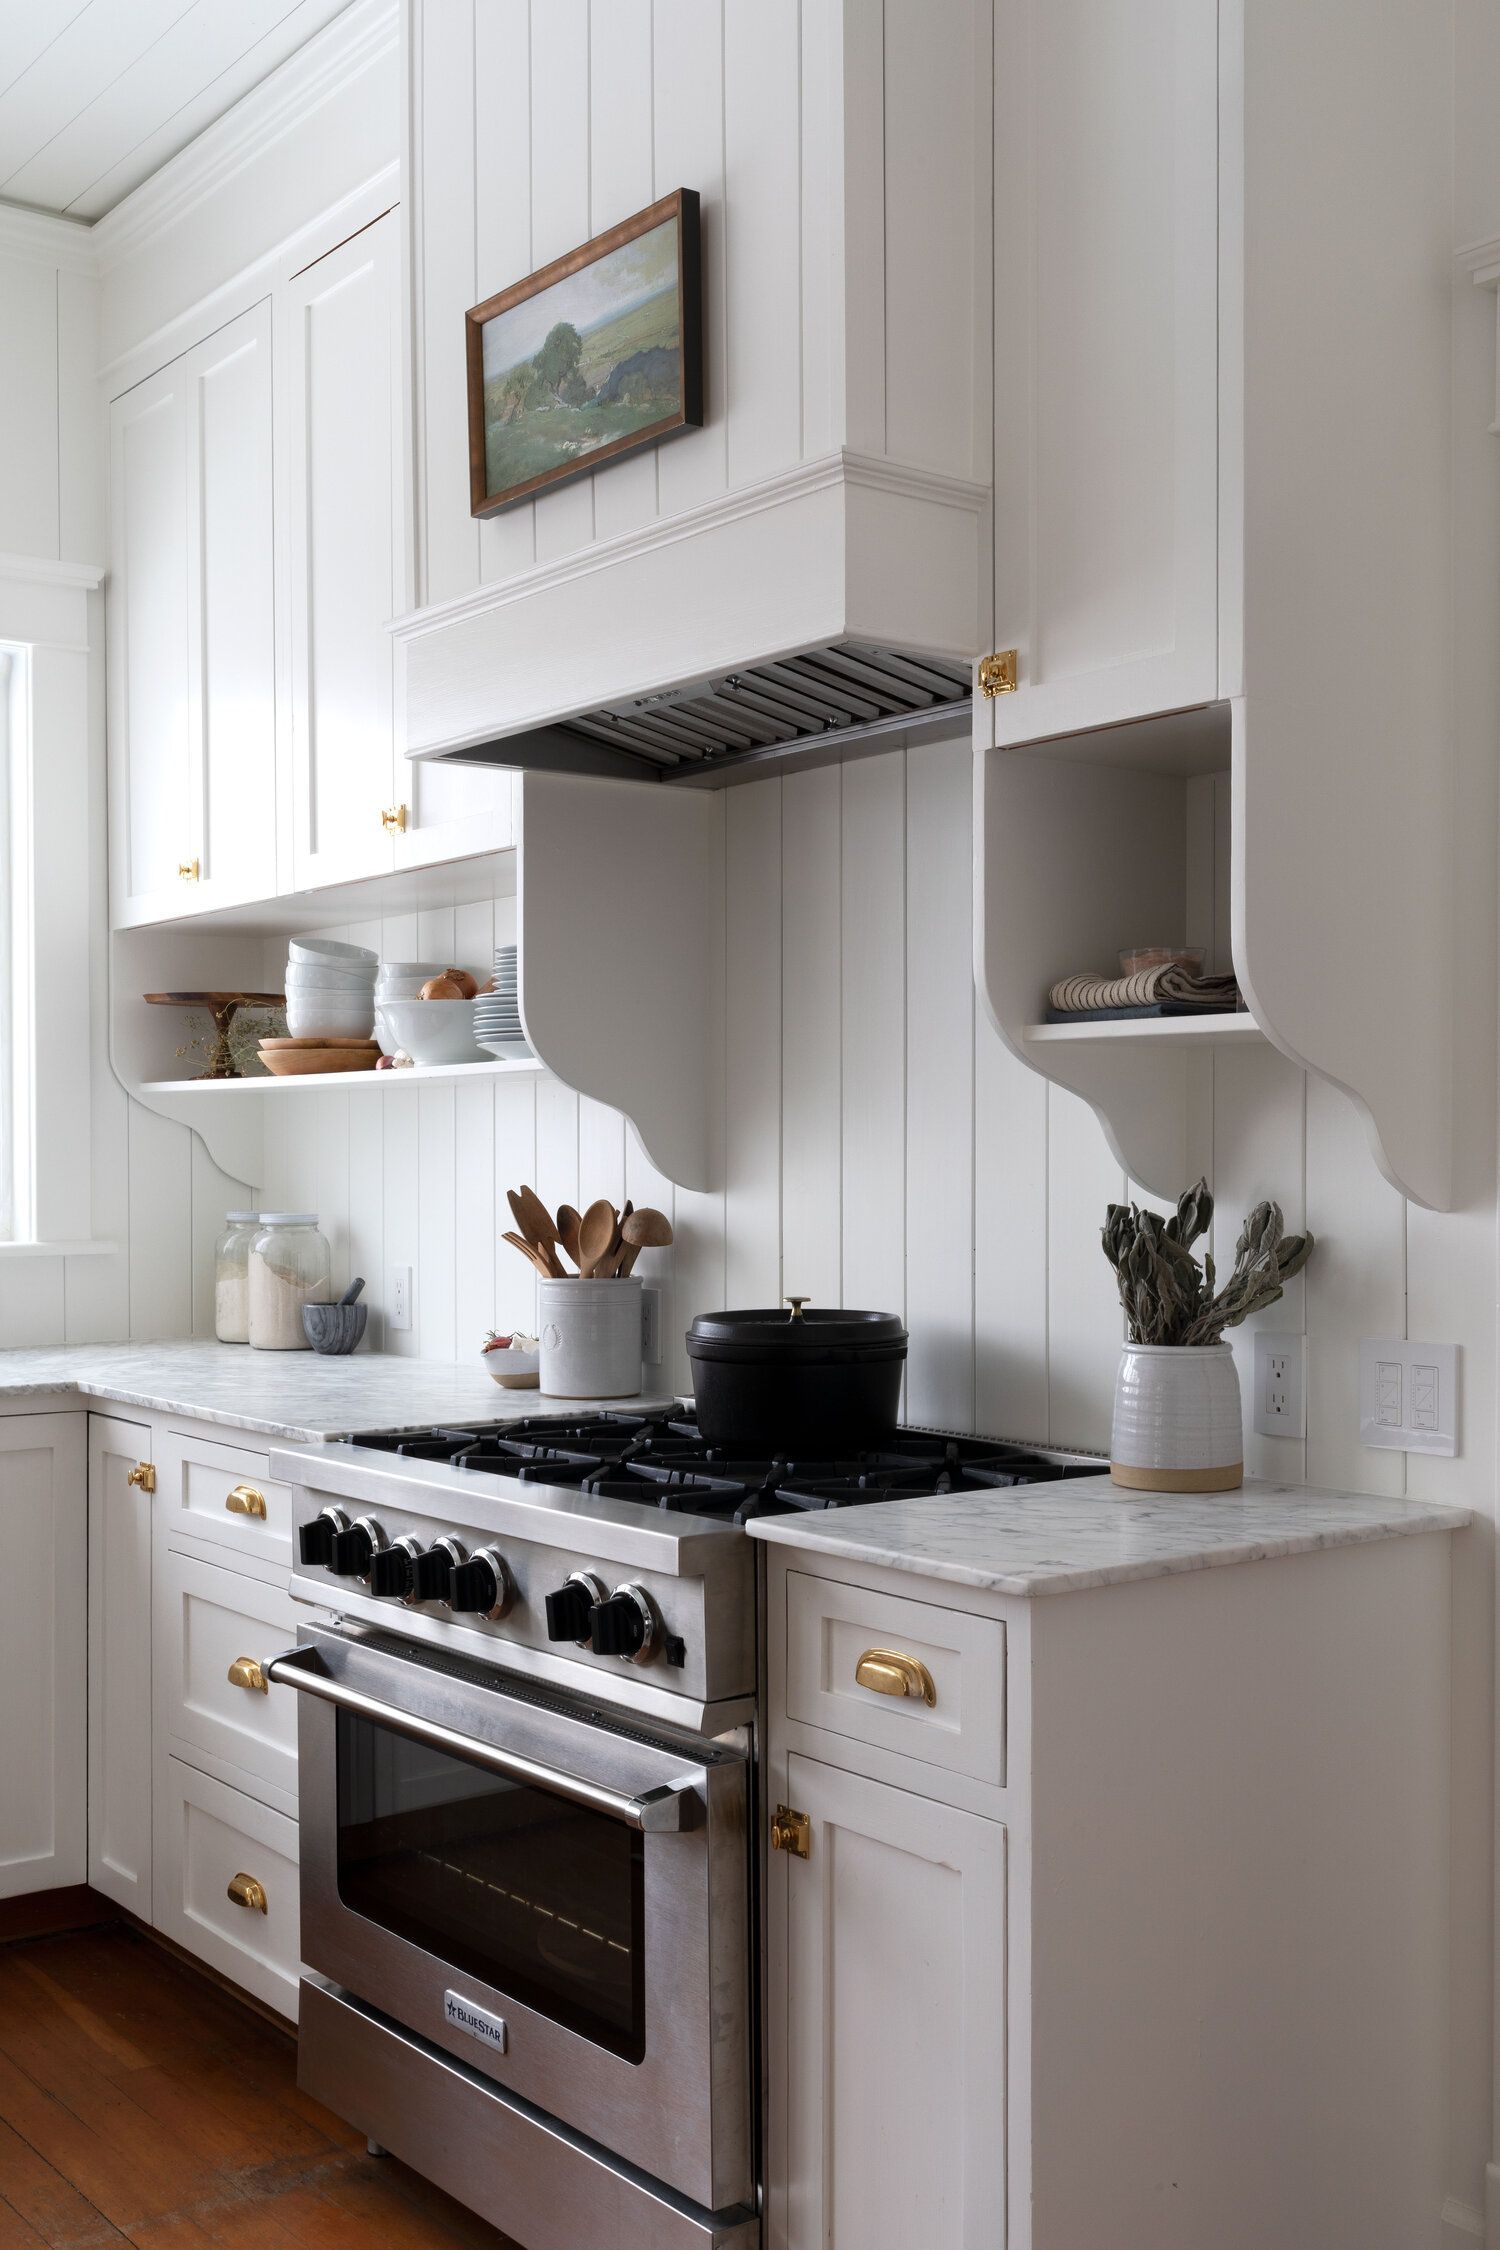 Photo of Our Farmhouse Kitchen Reveal! — The Grit and Polish